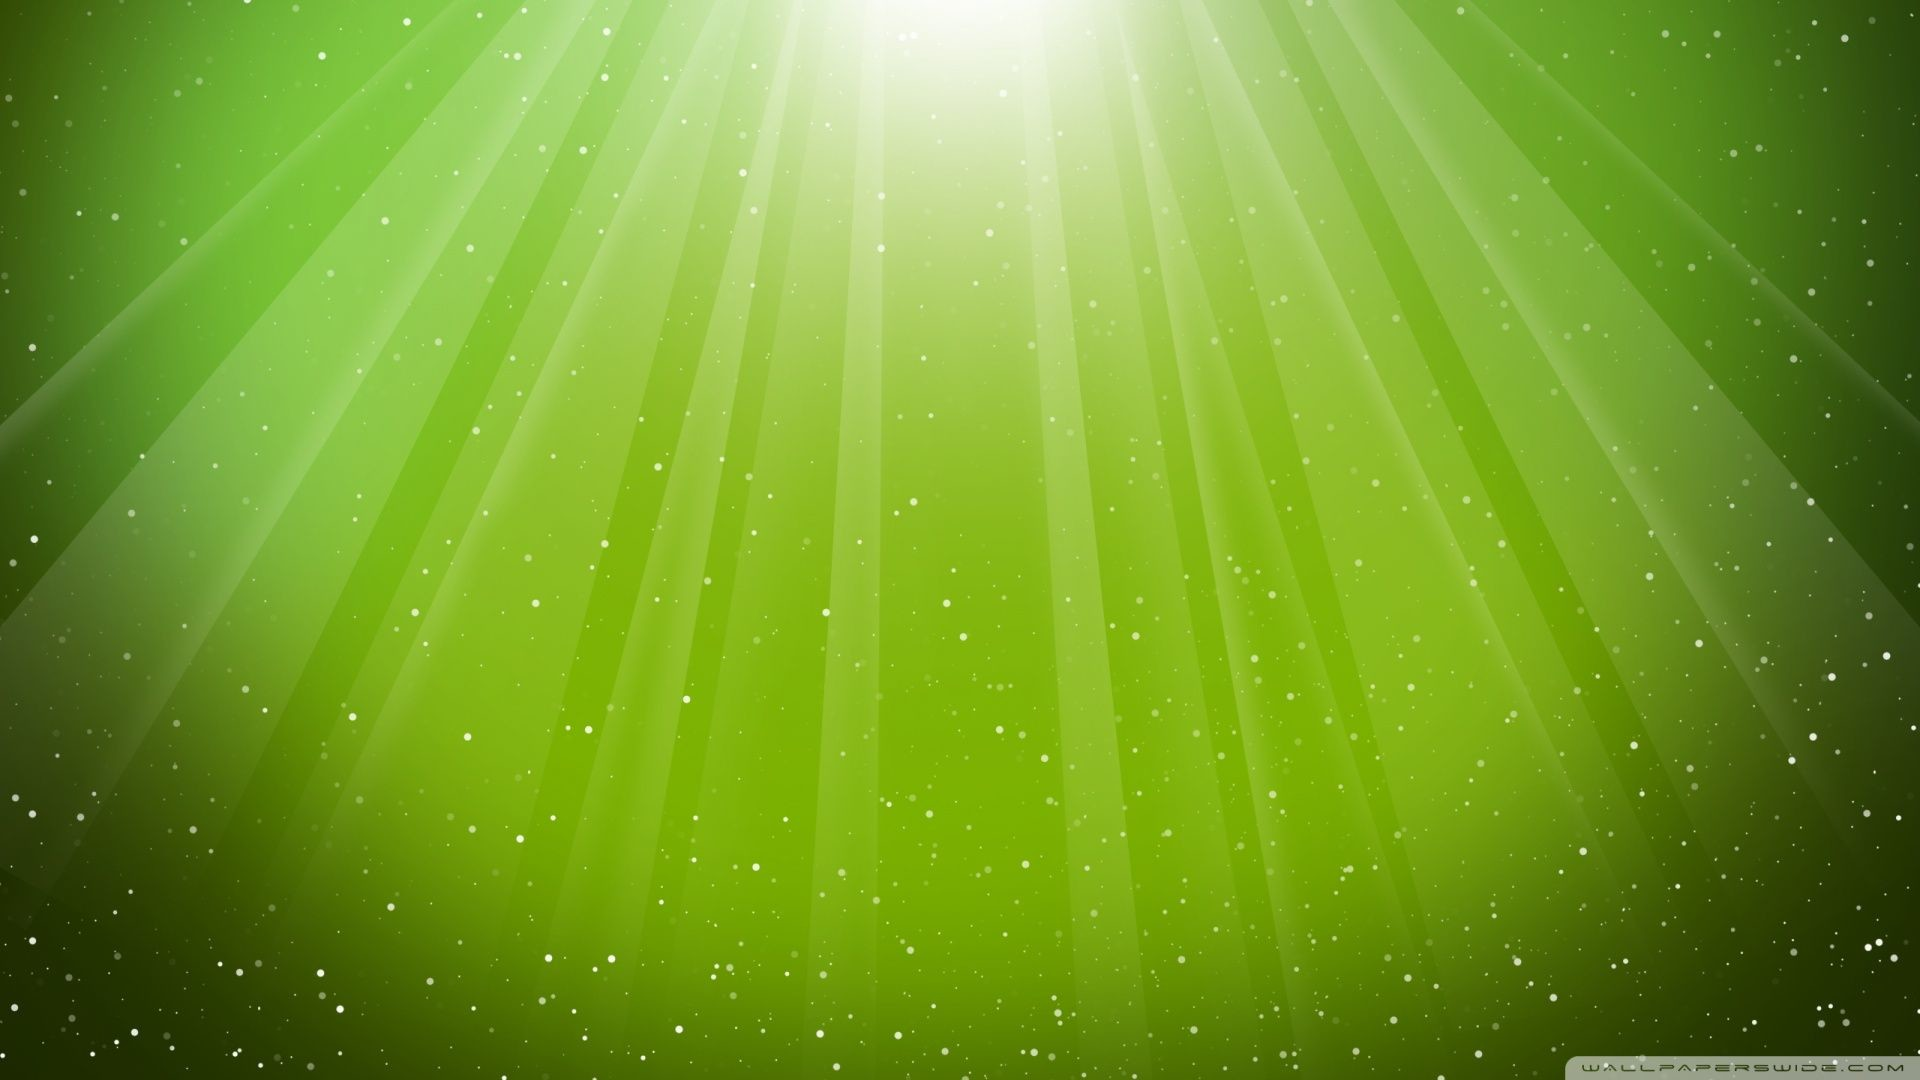 1920x1080 Neon Green Design Backgrounds 042 Dekstop HD Wallpapers wfz